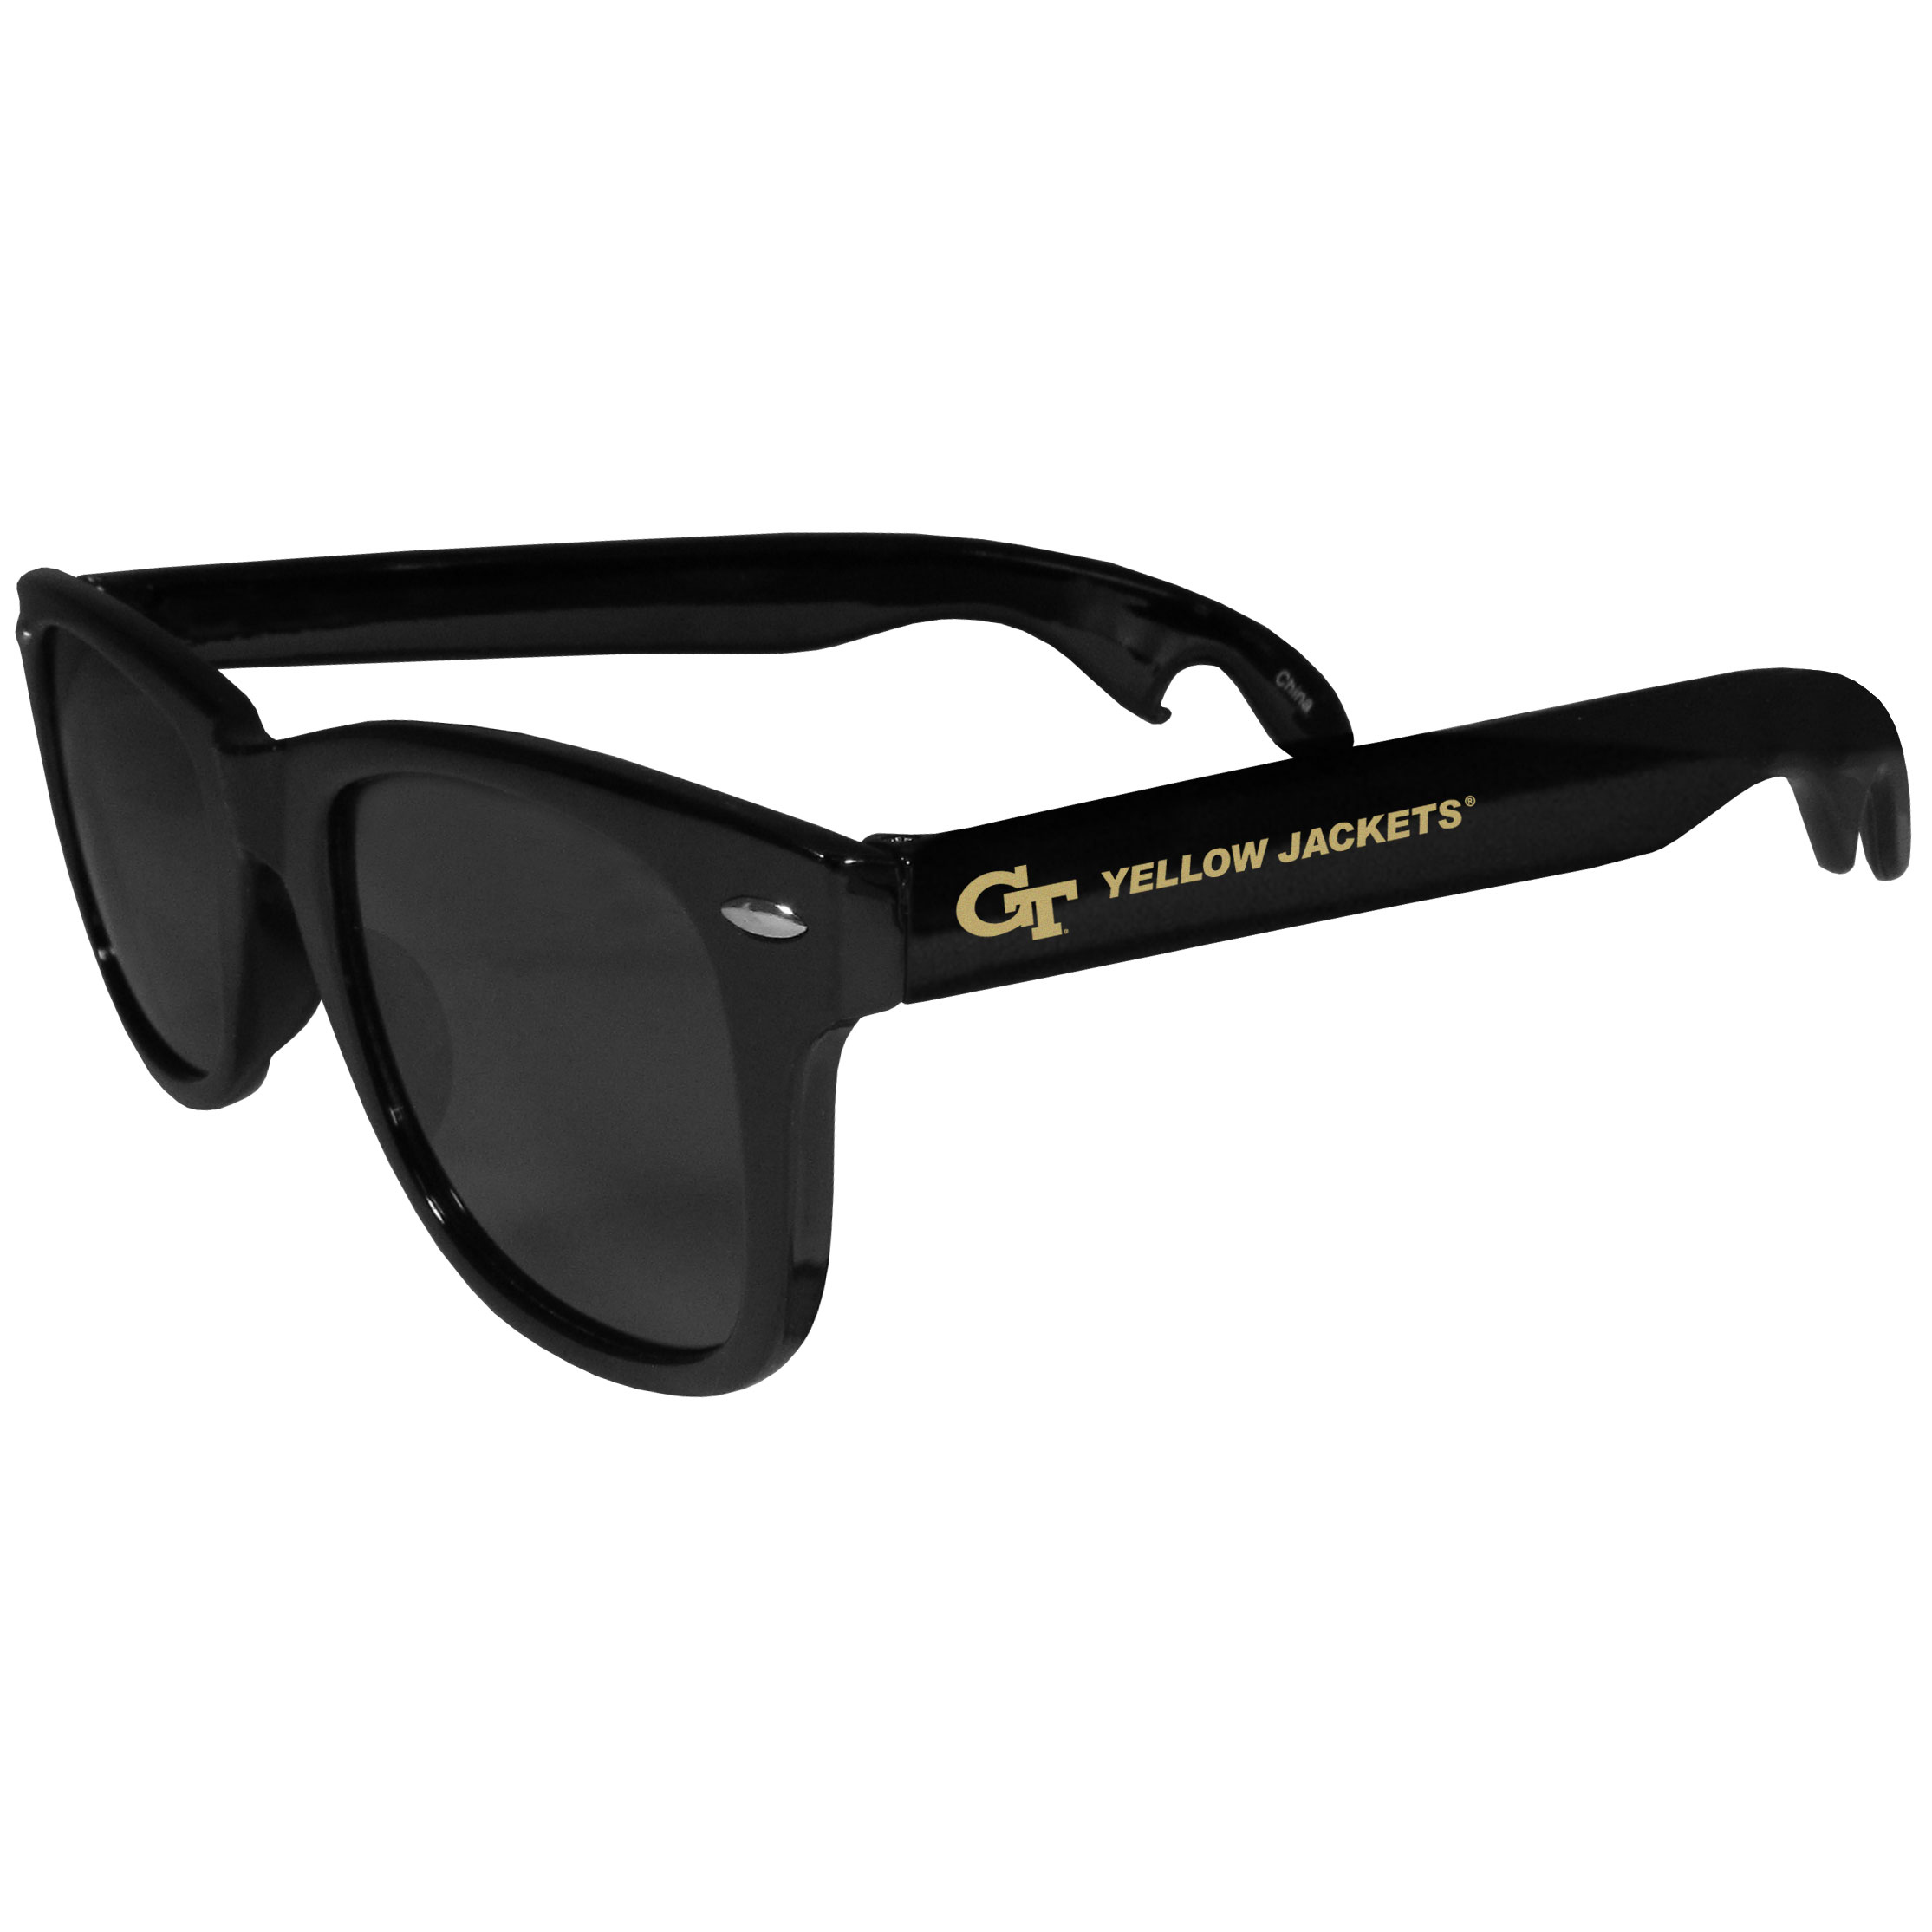 Georgia Tech Yellow Jackets Beachfarer Bottle Opener Sunglasses - Seriously, these sunglasses open bottles! Keep the party going with these amazing Georgia Tech Yellow Jackets bottle opener sunglasses. The stylish retro frames feature team designs on the arms and functional bottle openers on the end of the arms. Whether you are at the beach or having a backyard BBQ on game day, these shades will keep your eyes protected with 100% UVA/UVB protection and keep you hydrated with the handy bottle opener arms.